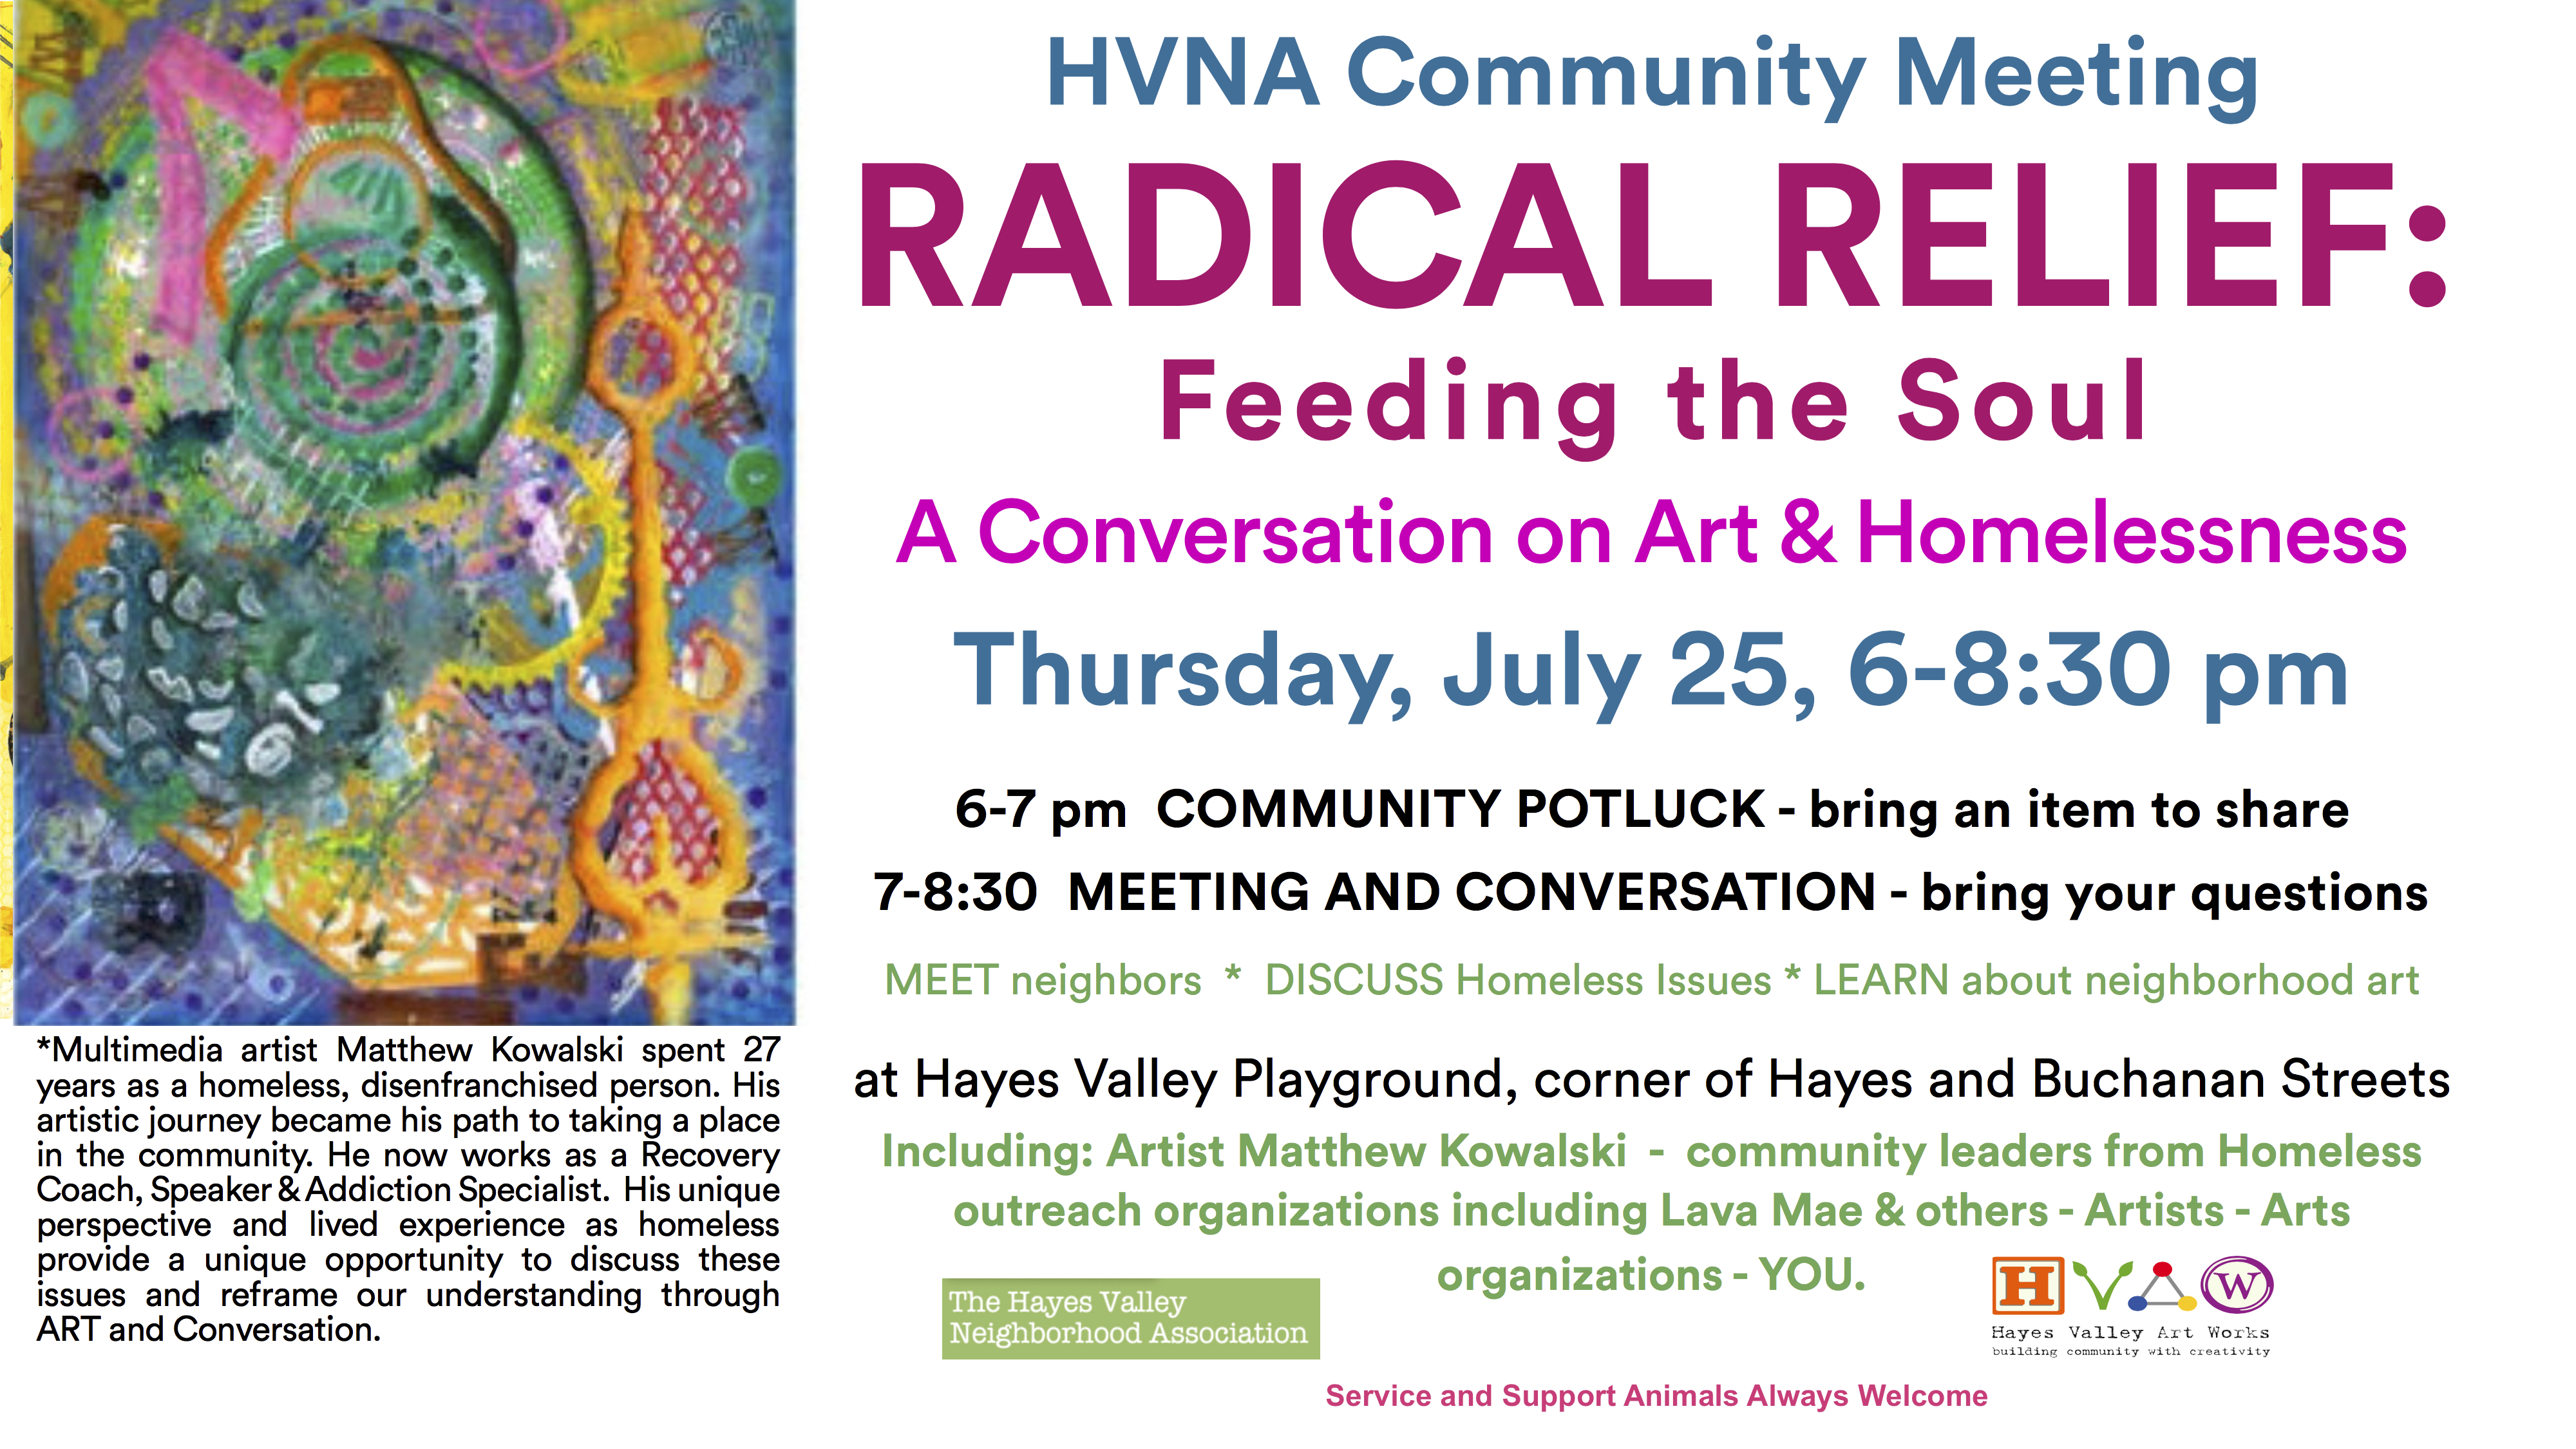 HVNA Radical Relief Community Meeting - Animals welcome